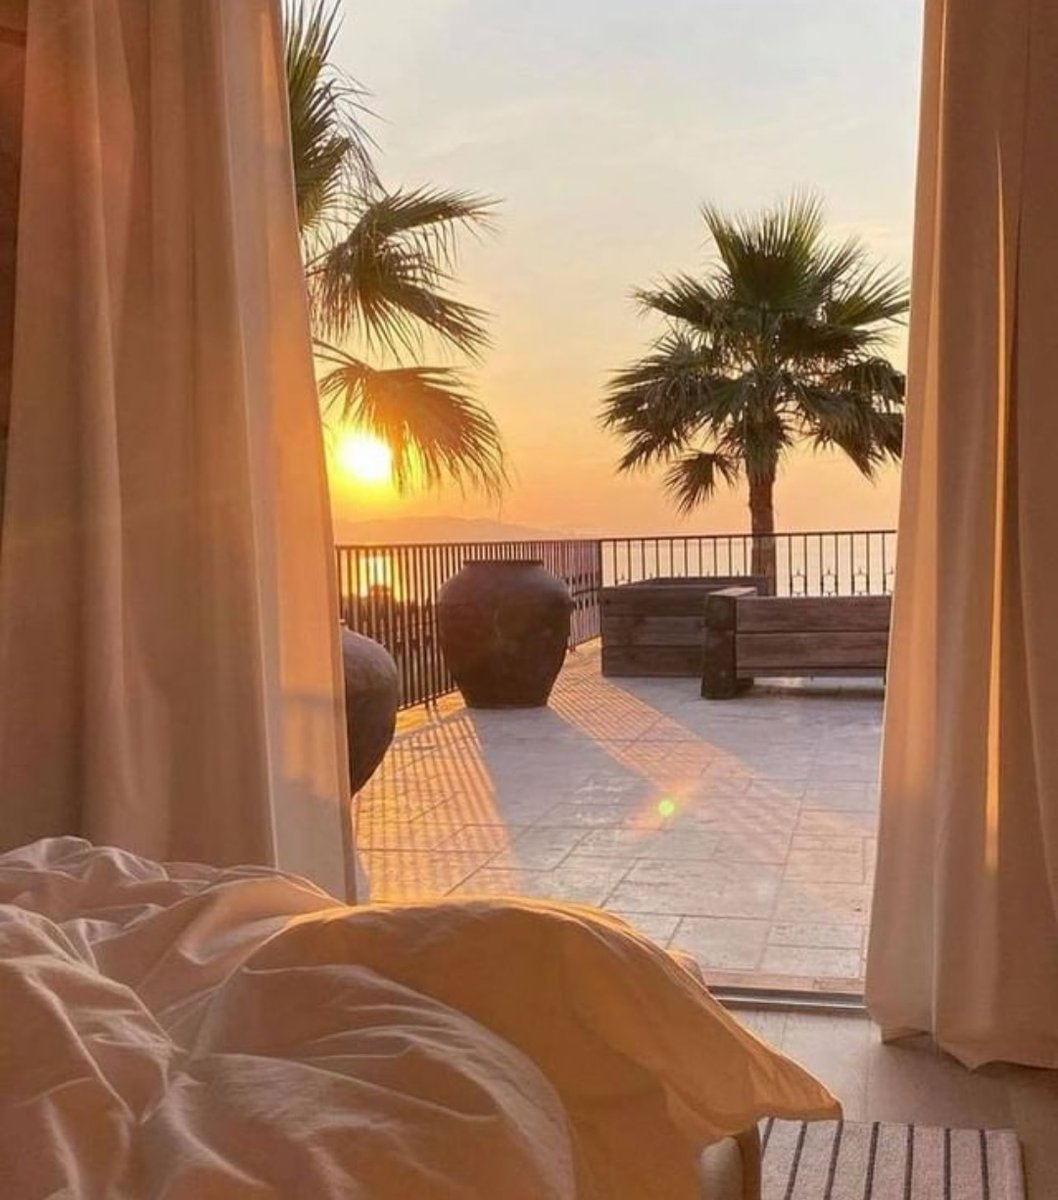 Image for The Dreamiest Setting 😍☀️✈   Tag who you would love to be here with 👇🏽   #ikrushbabe #styling #summer21 https://t.co/T1r0lCpc3E